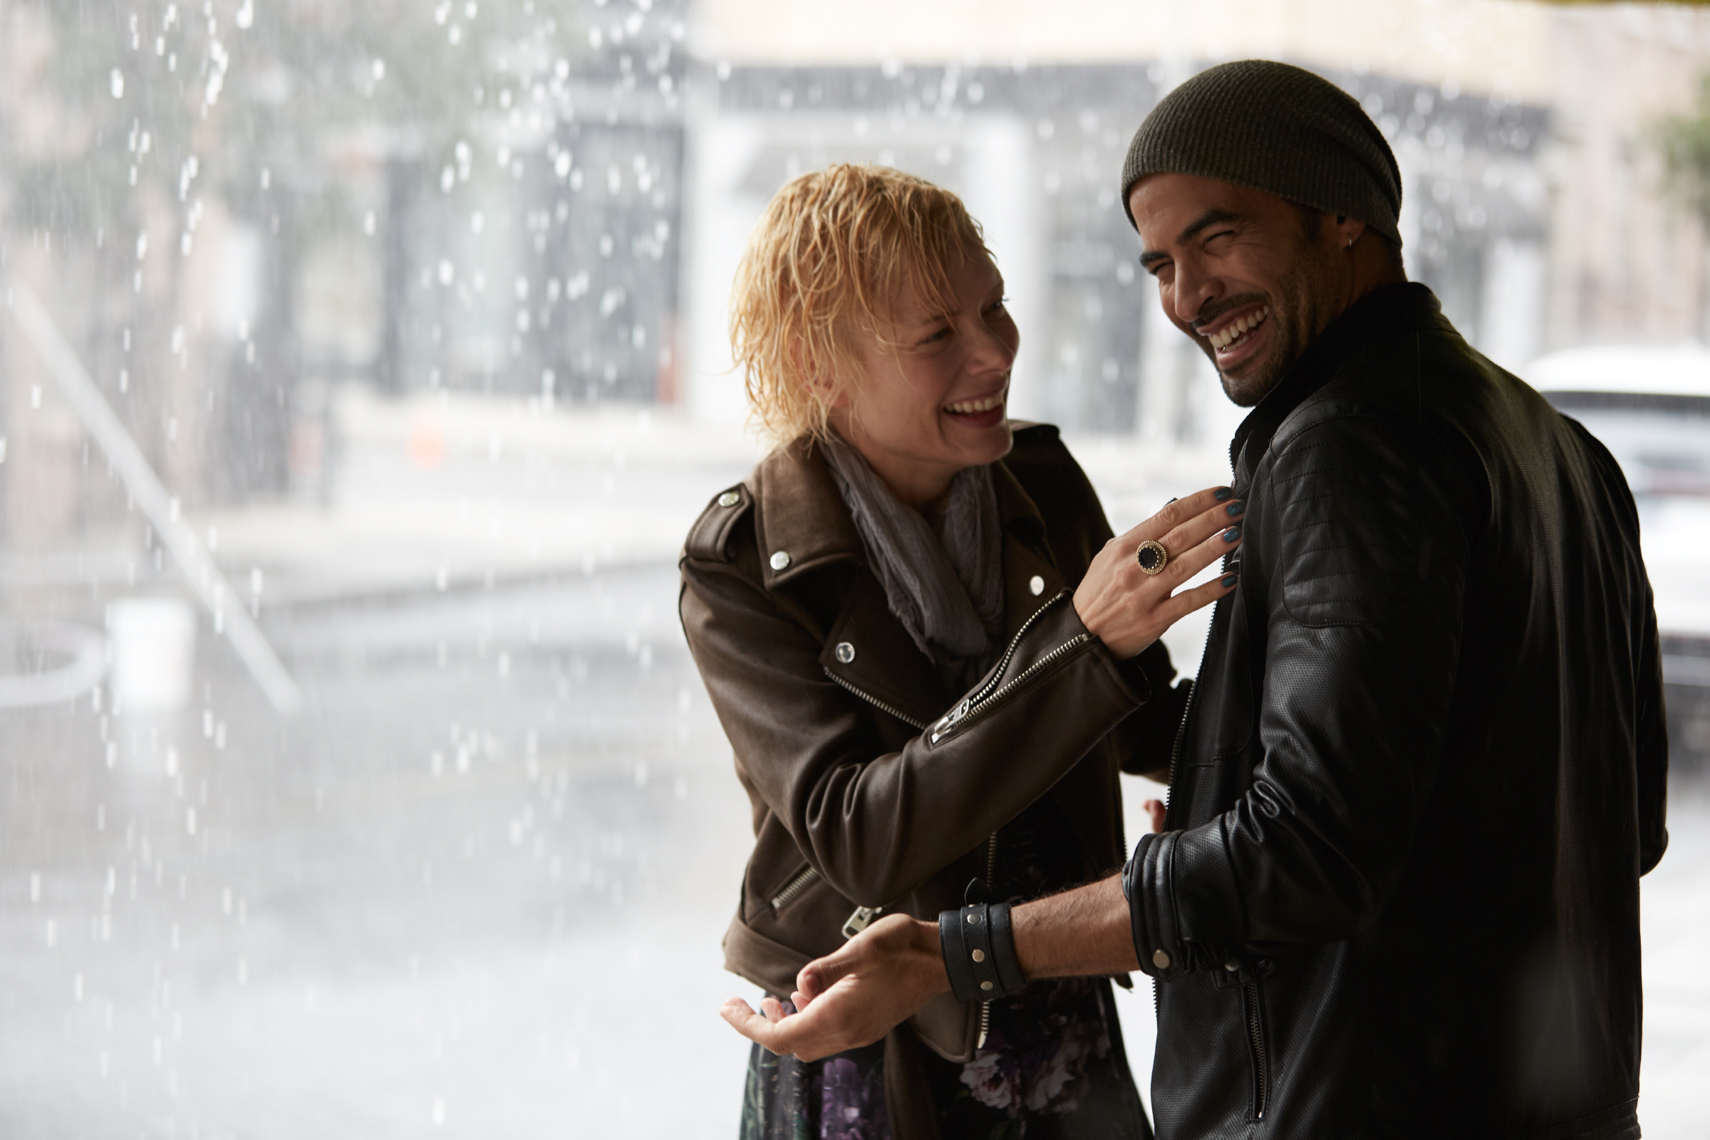 Woman and man wearing leather and laughing at each other on the sidewalk on a rainy day